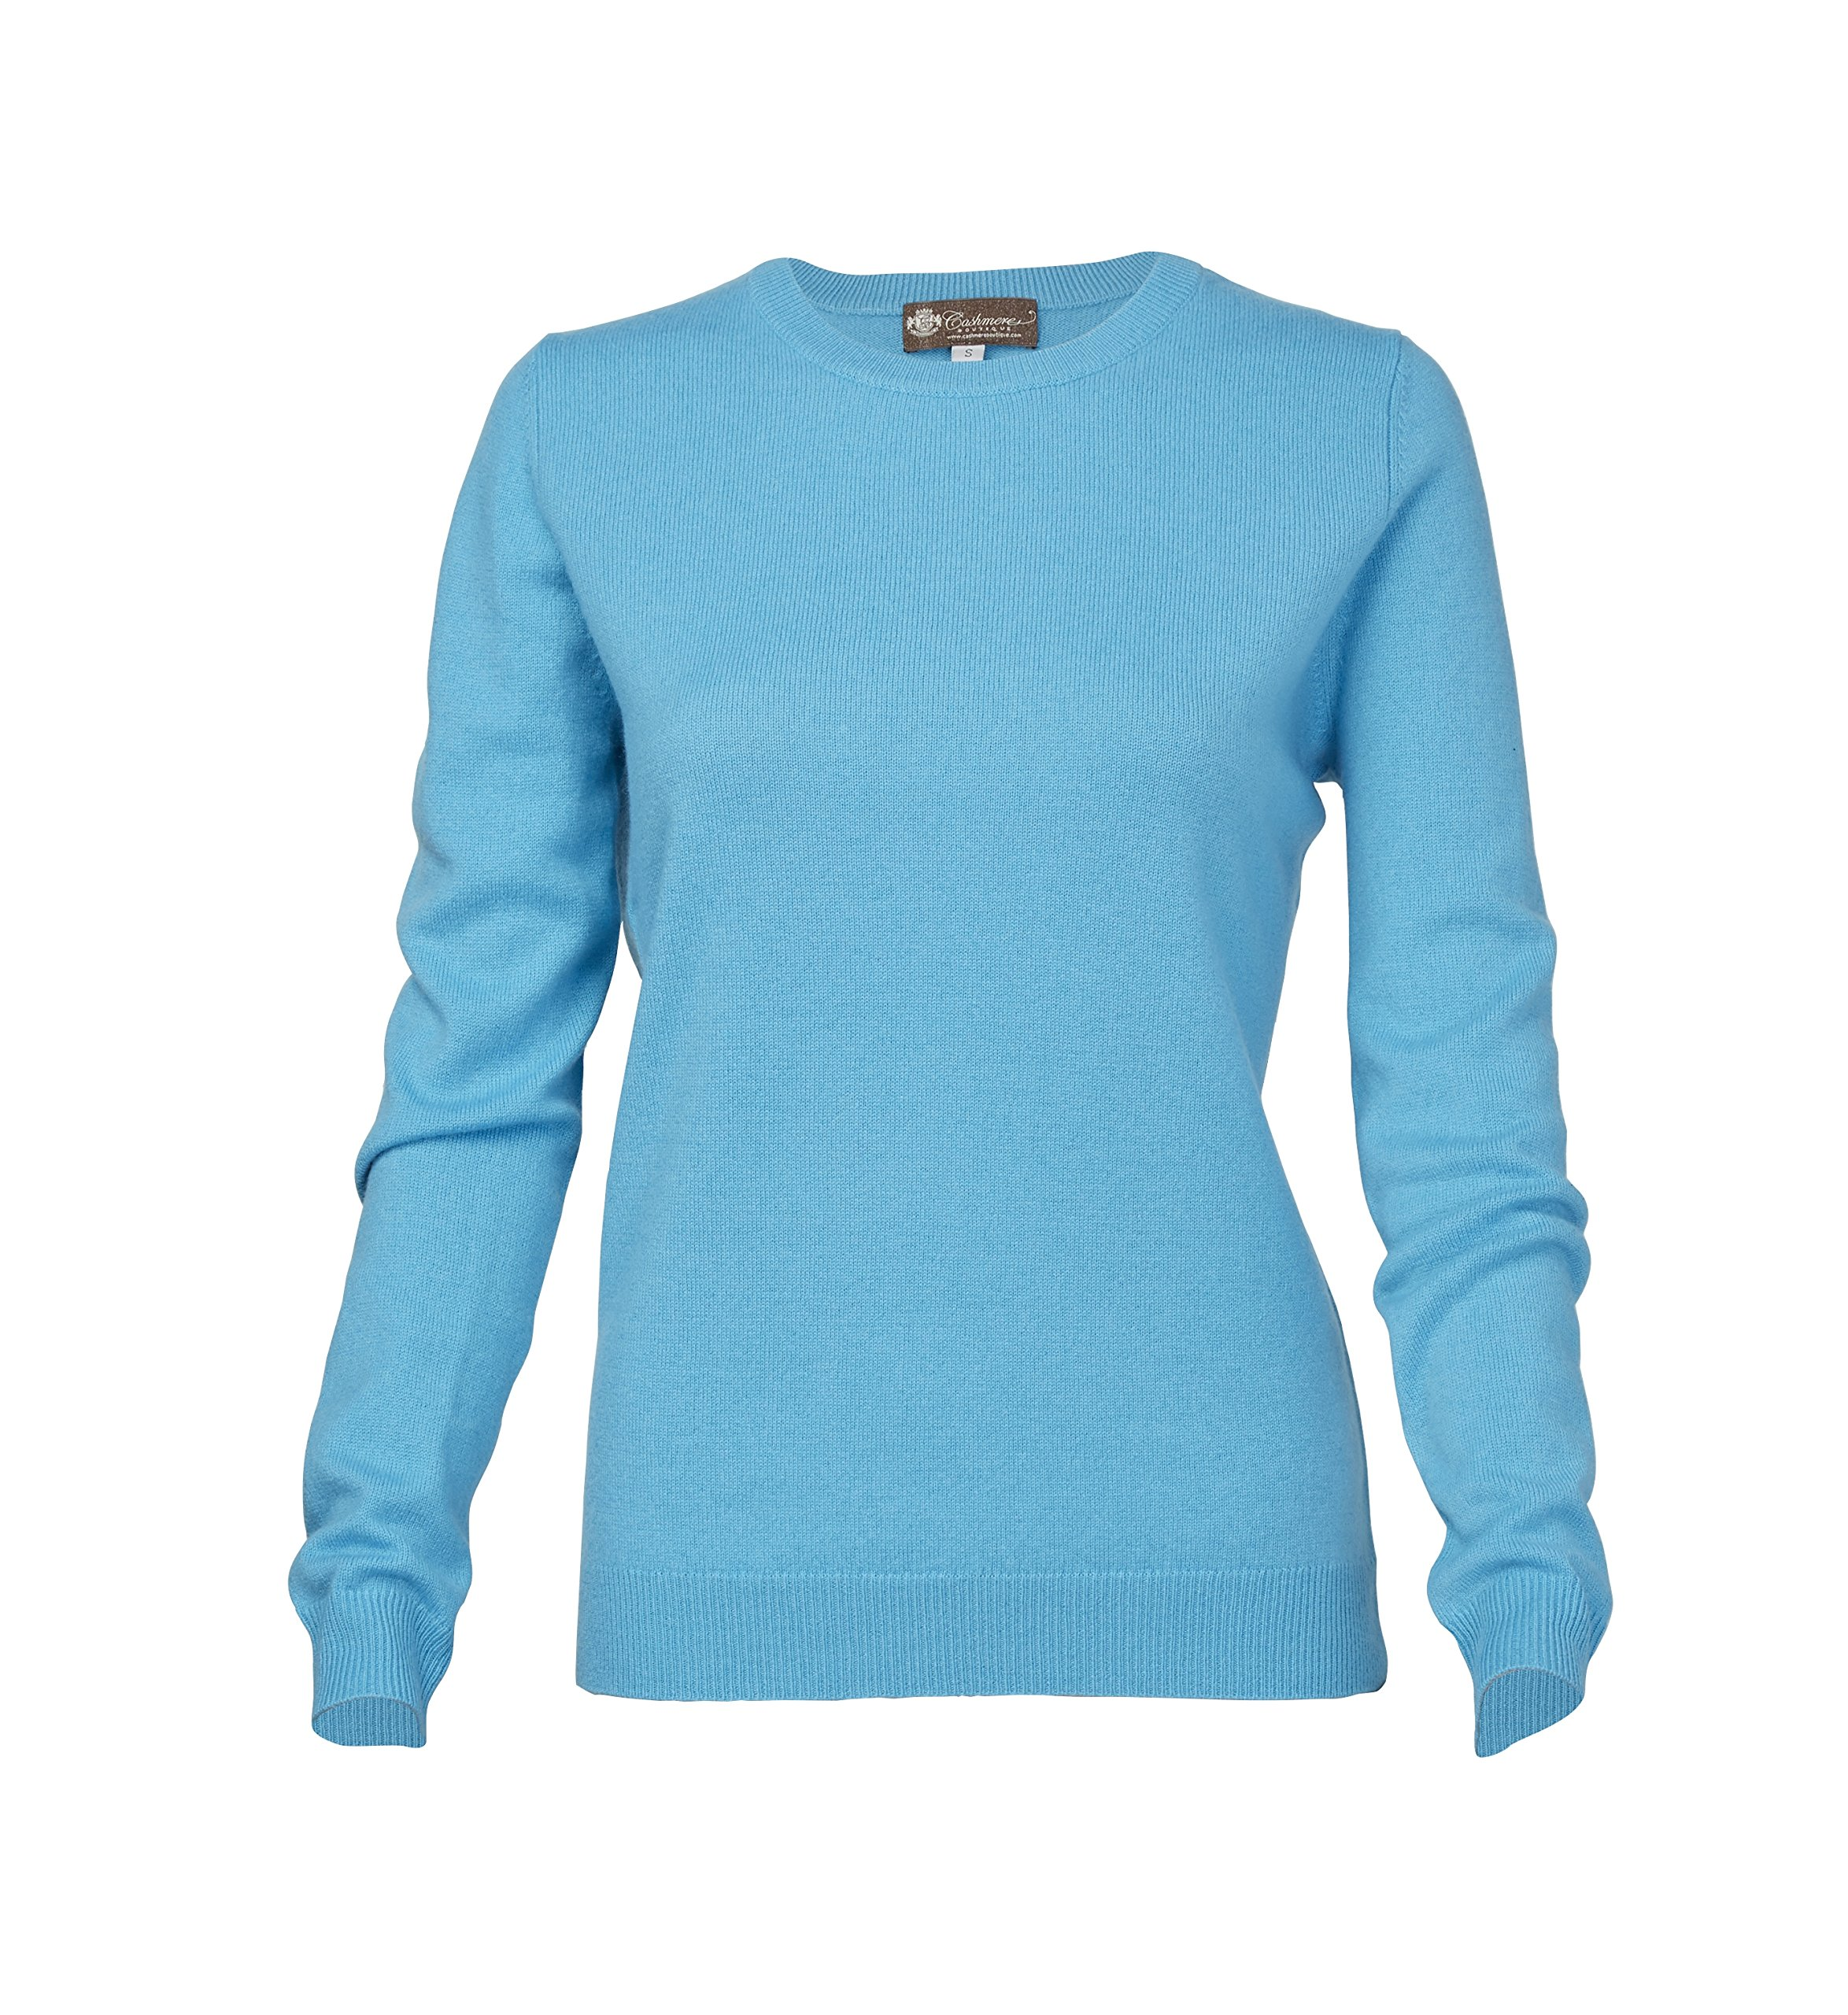 Women's Crew Neck Cashmere Sweater (Turquoise Blue, Small)